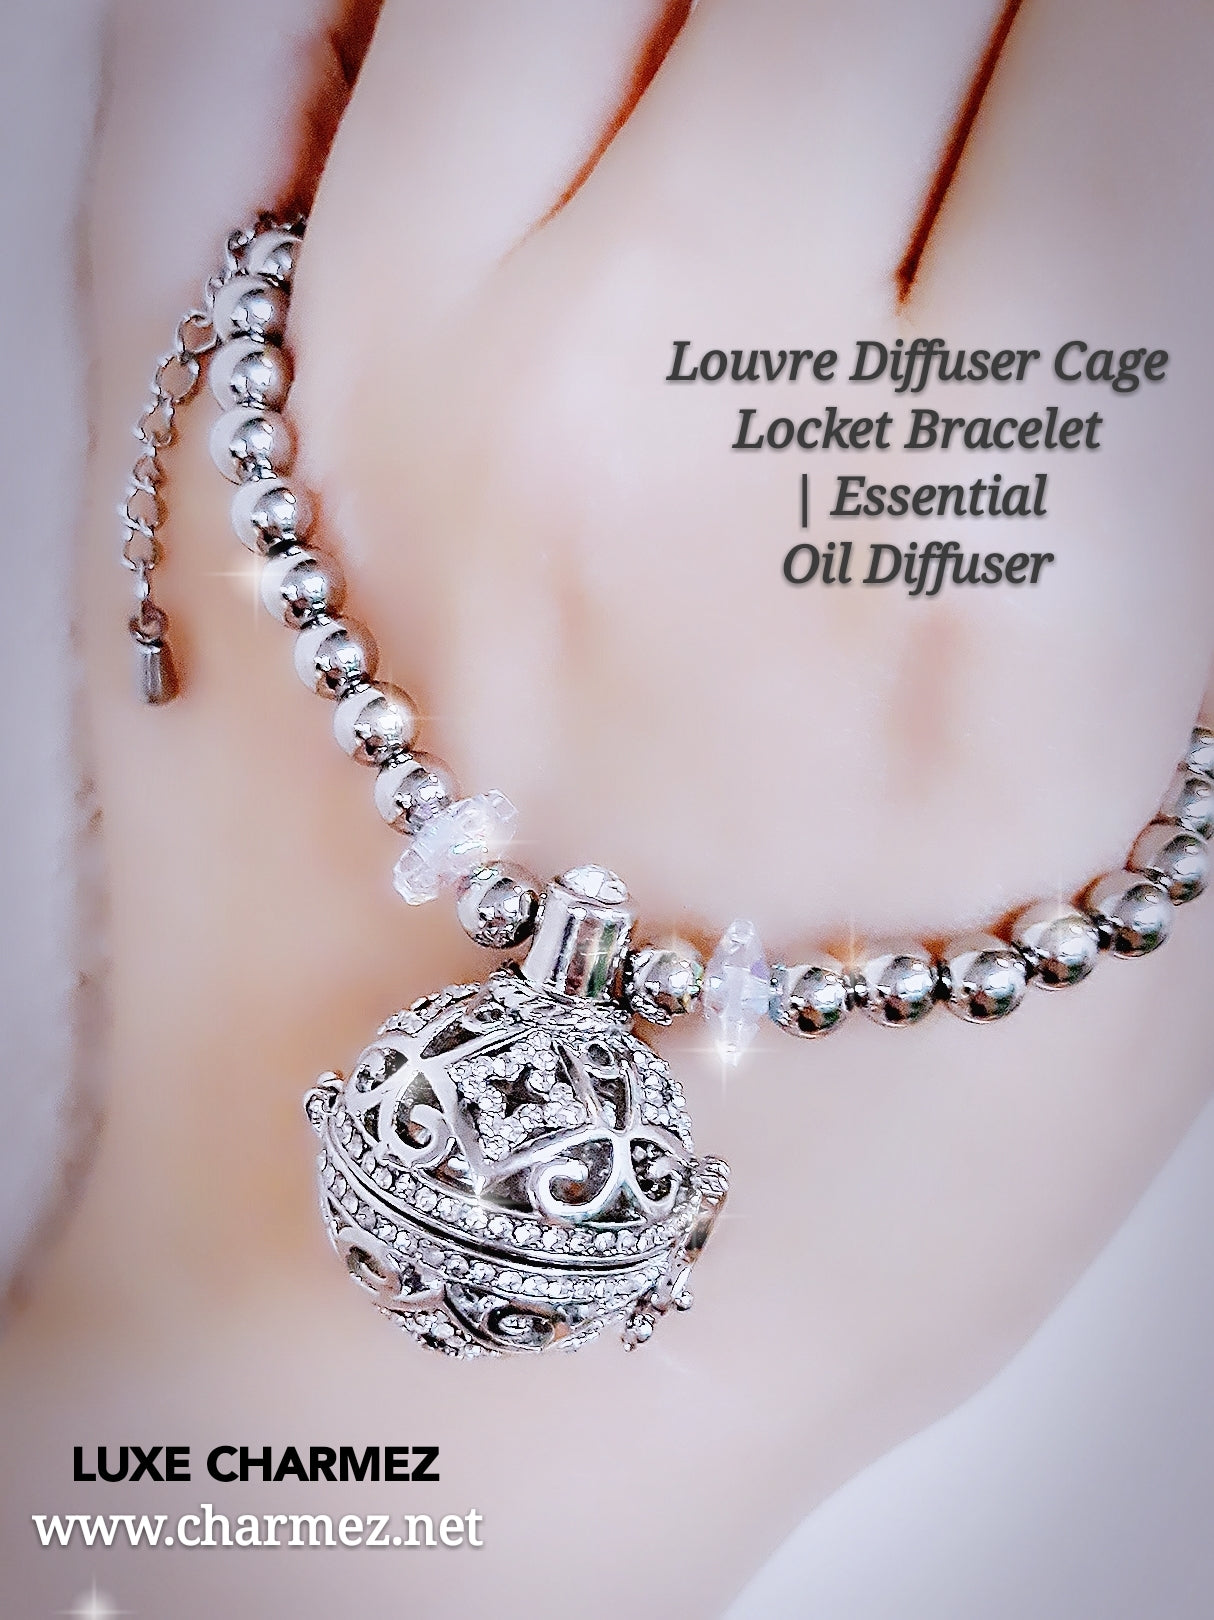 with someone products gift charm to person hey butterfly connected holds from resonates bracelet valuable their you a locket is wear and it message custom keep fotor or show if new how each on